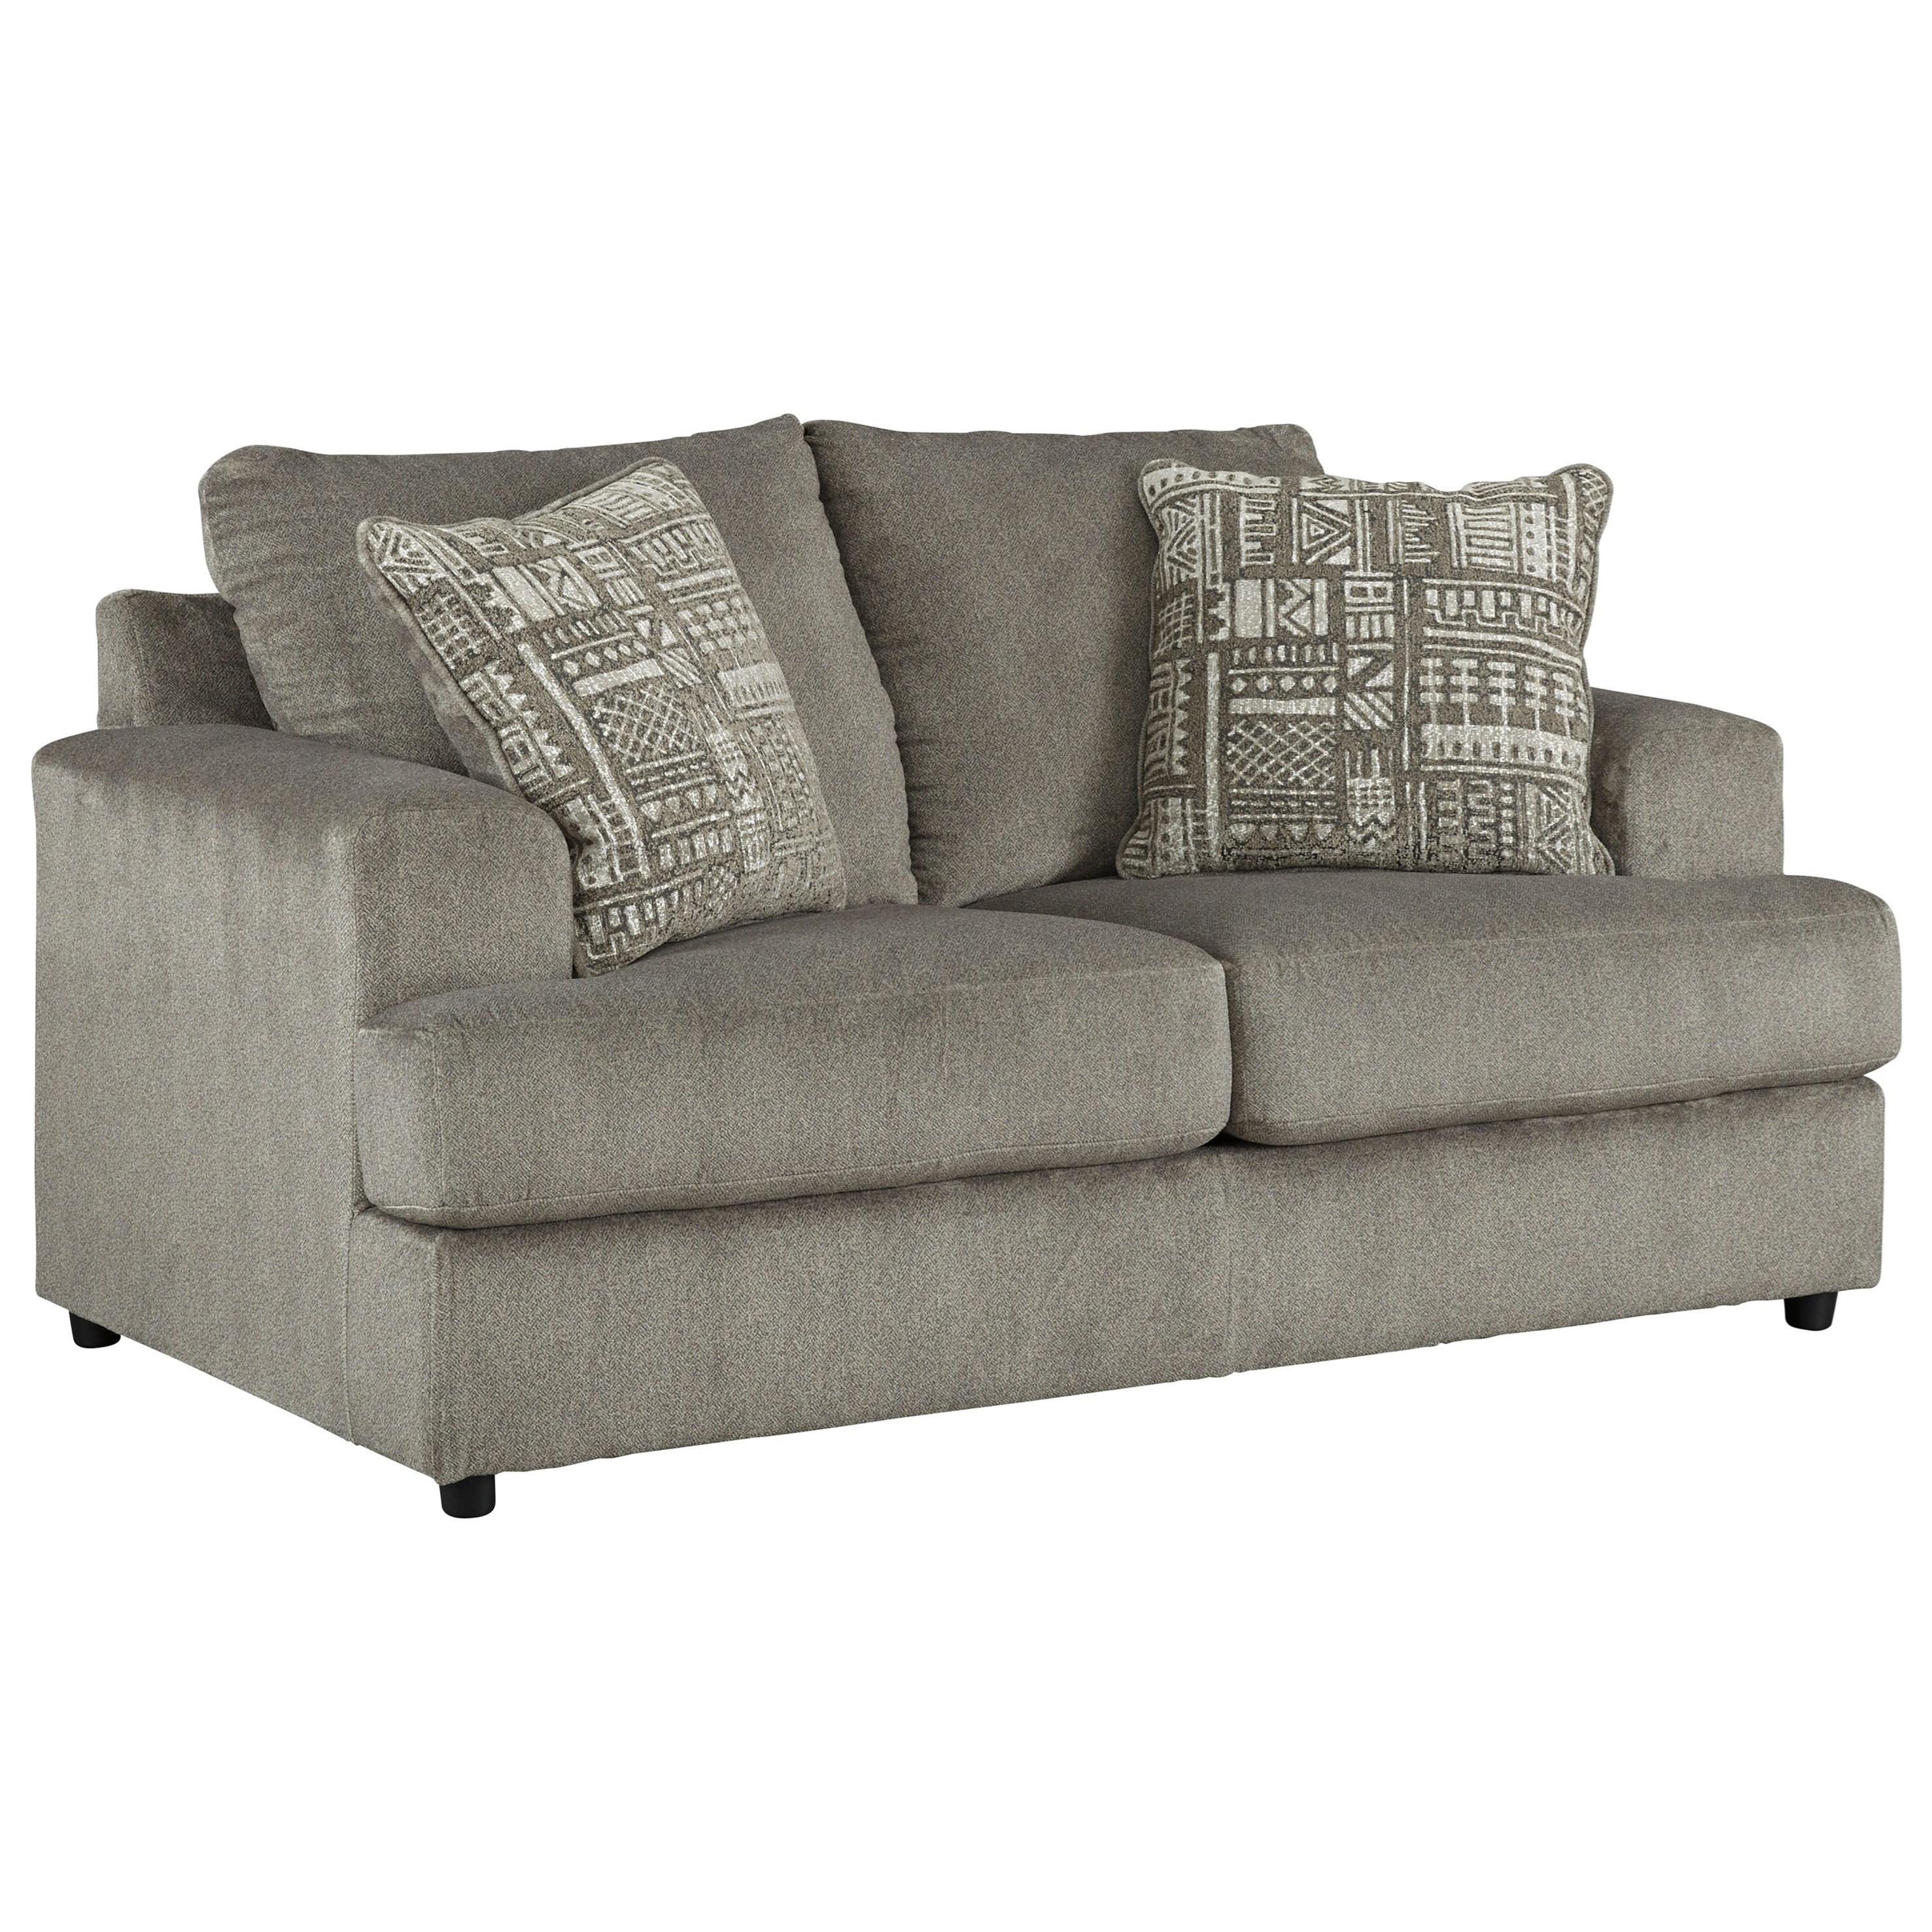 Signature Design By Ashley Soletren Contemporary Loveseat Royal Furniture Loveseats